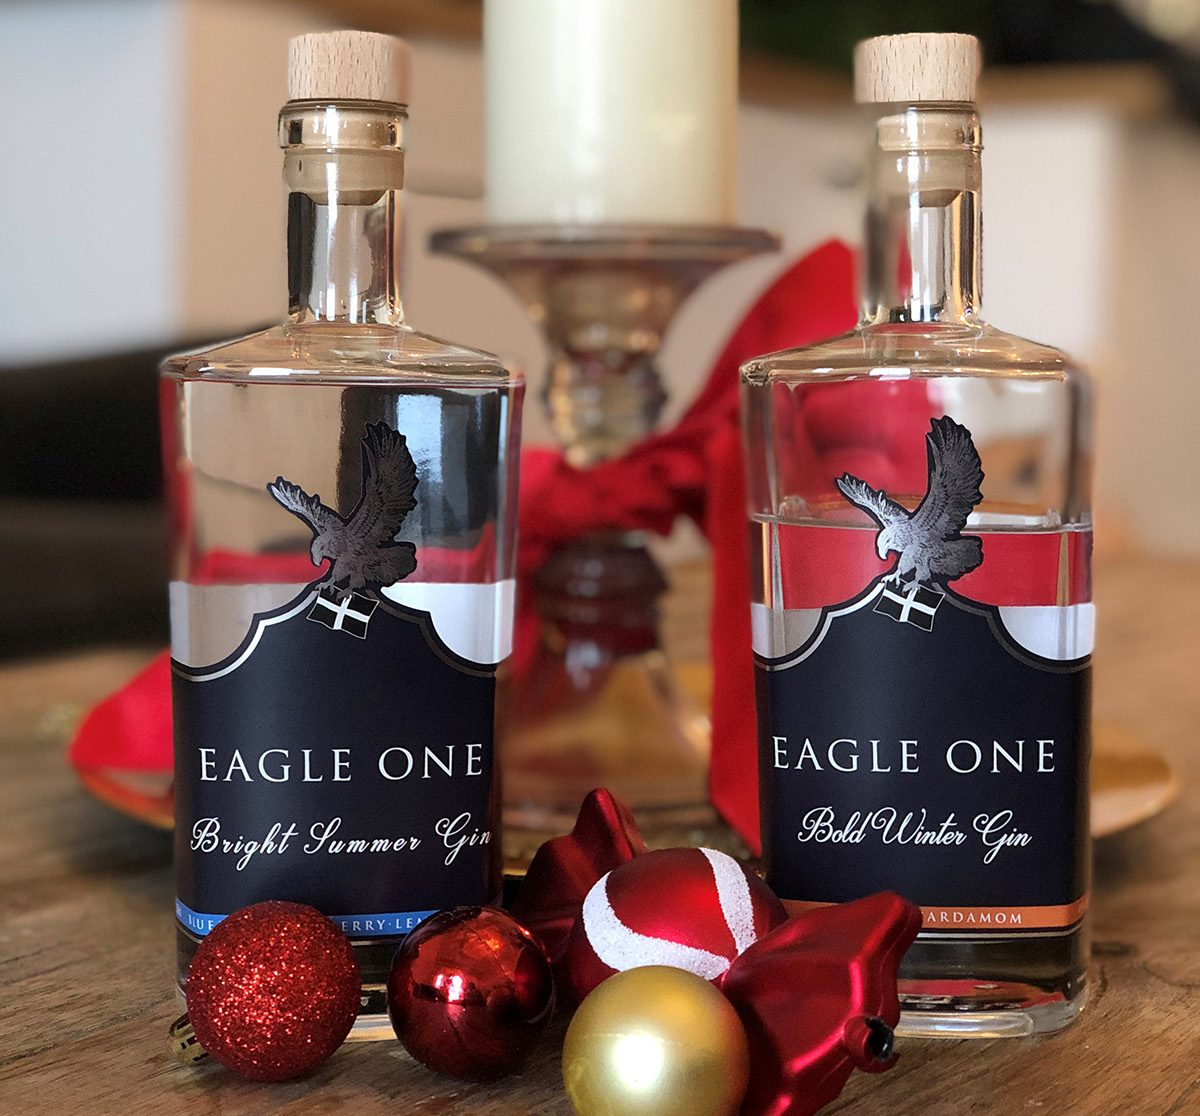 Eagle One gins from Cornwall